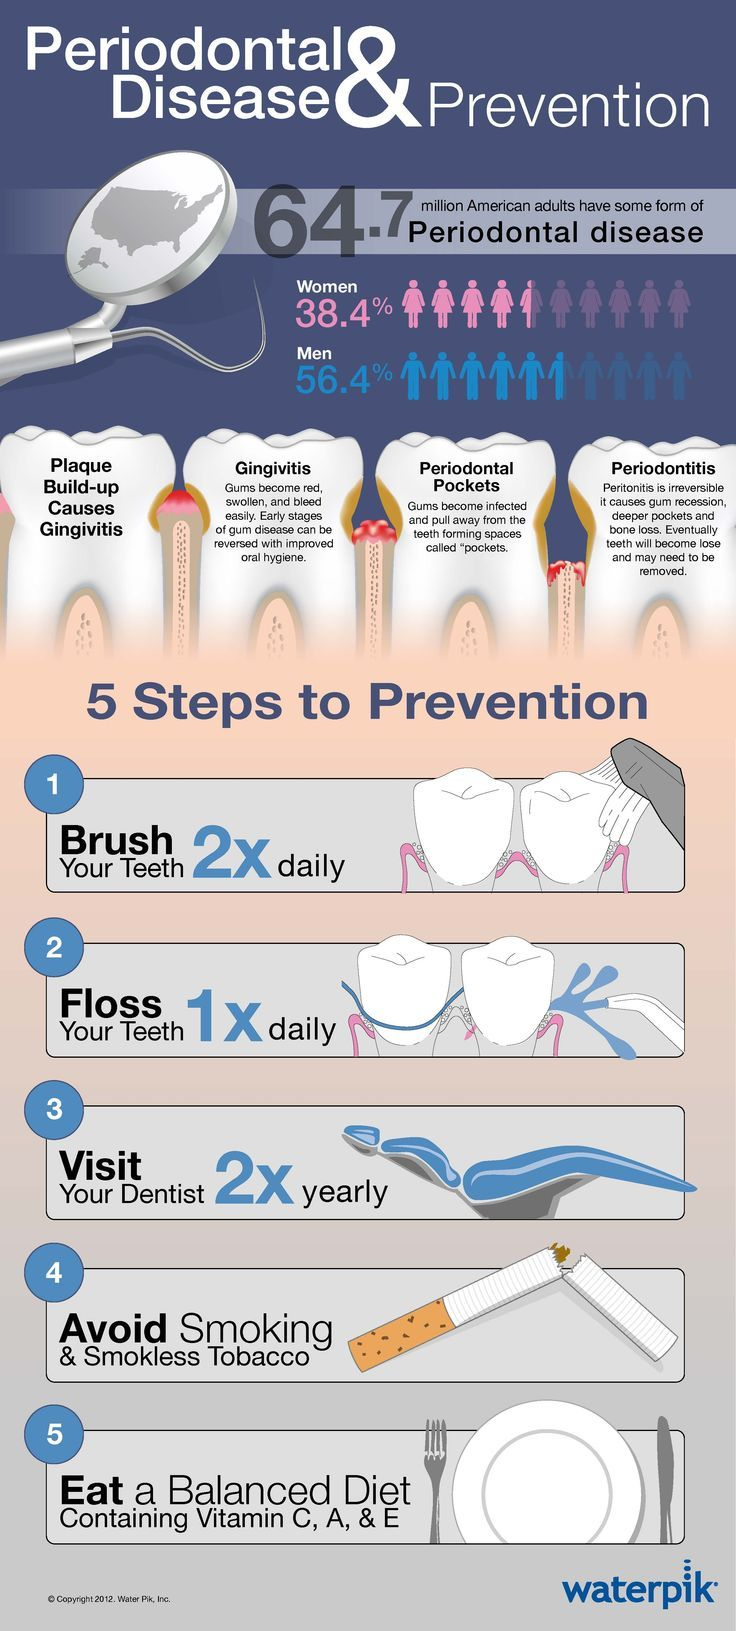 Discover 378 OralHealth tips for the ultimate healthy